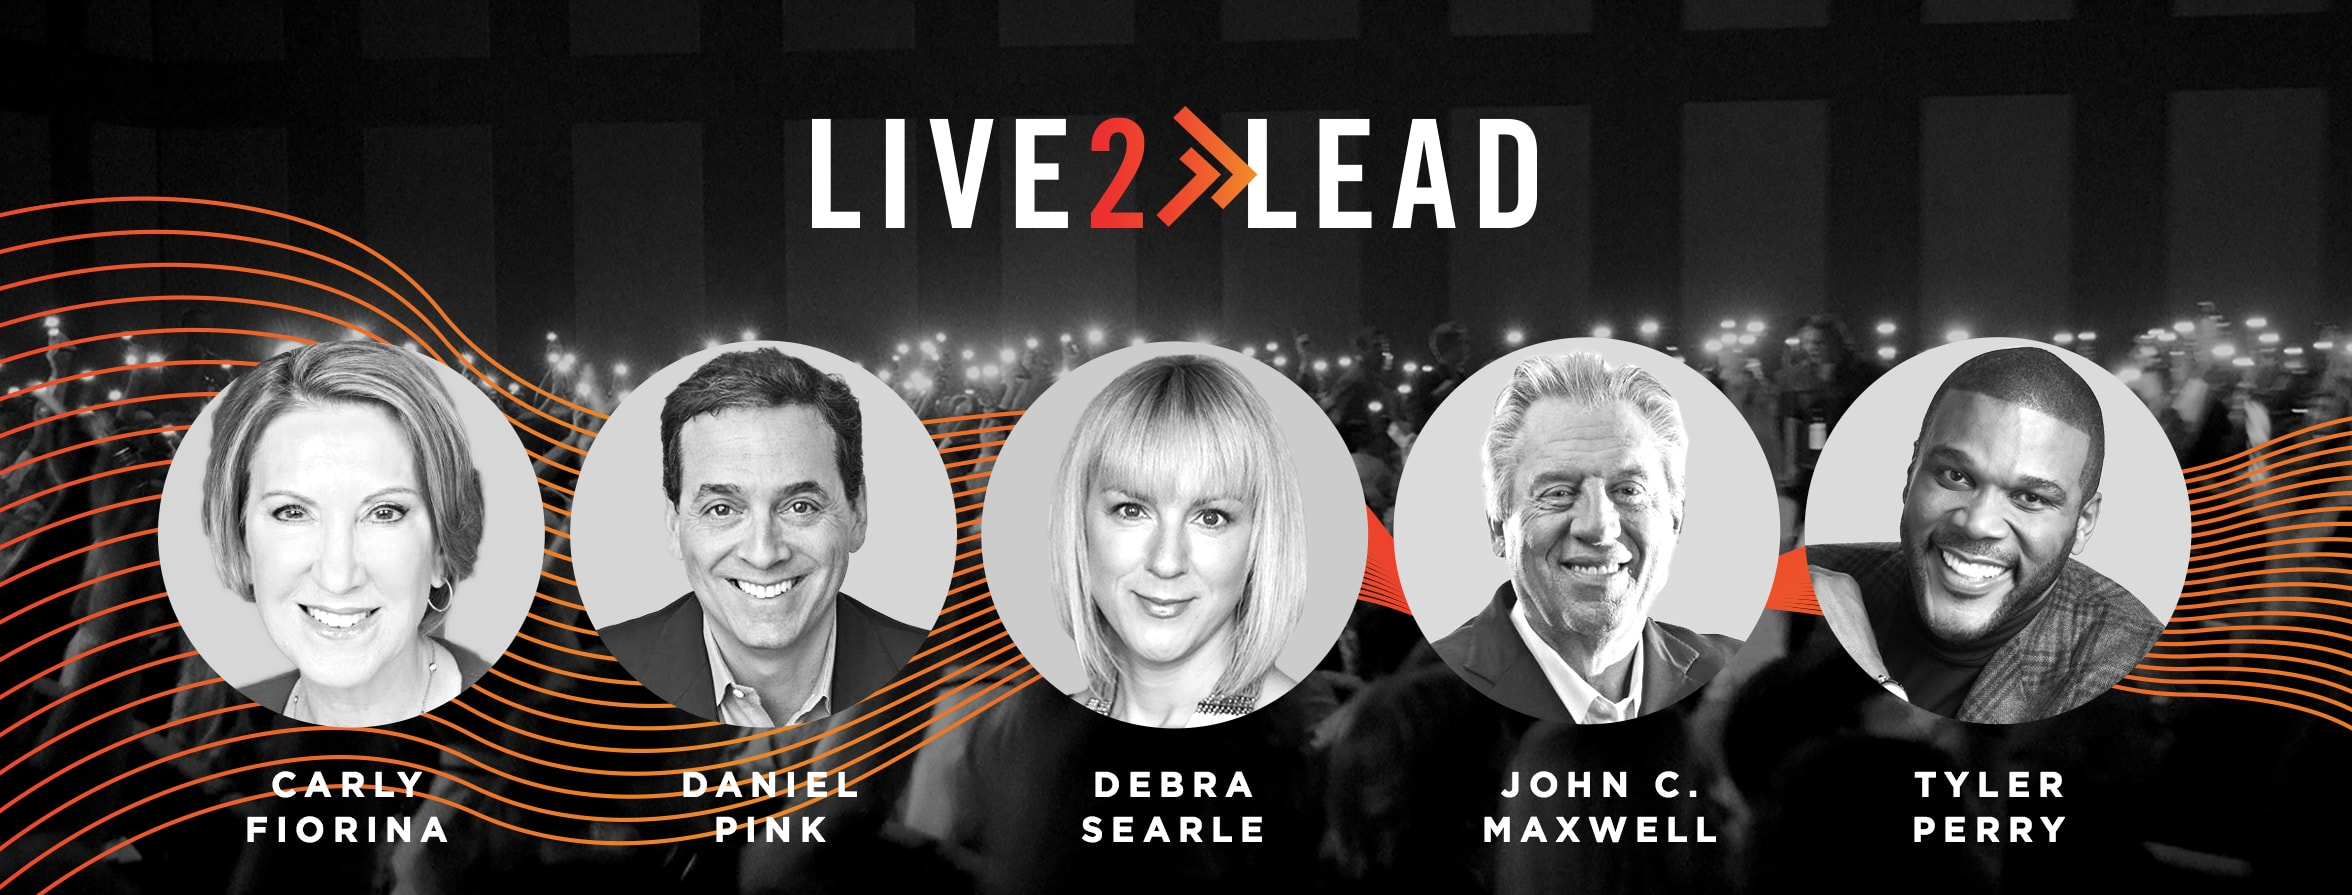 Live2Lead banner